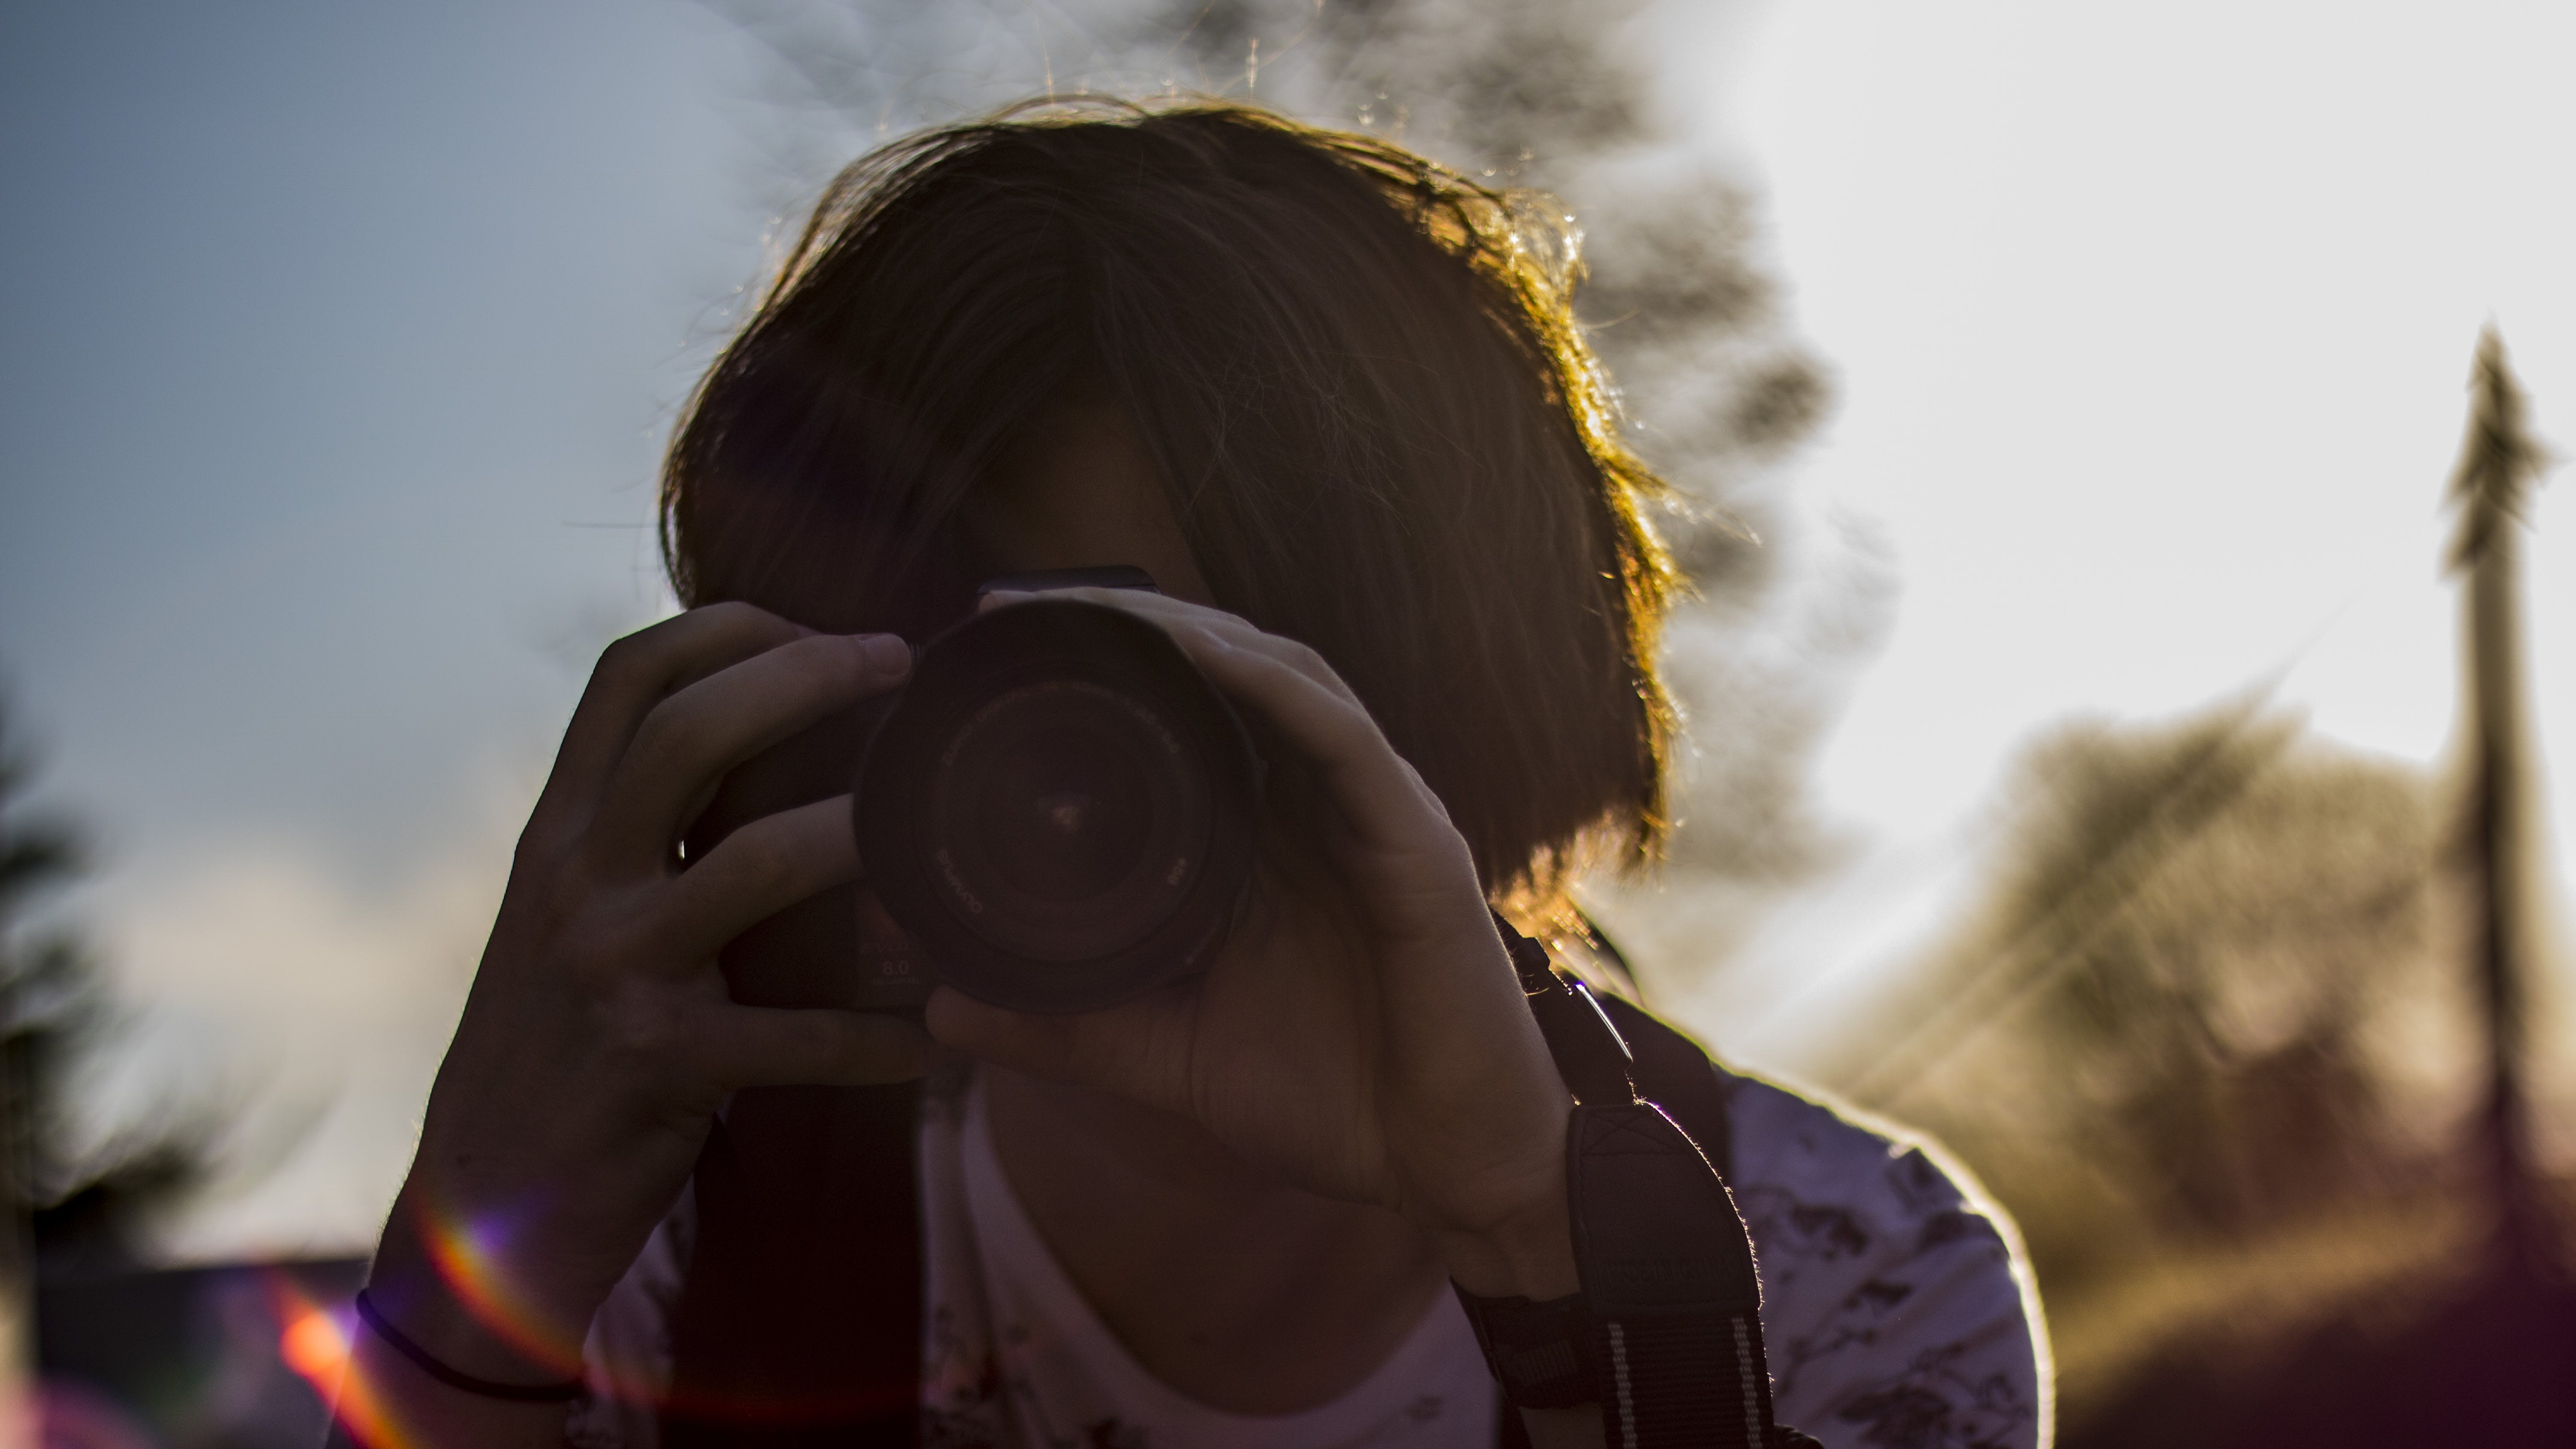 Focus Photography of Woman Using Dslr Camera